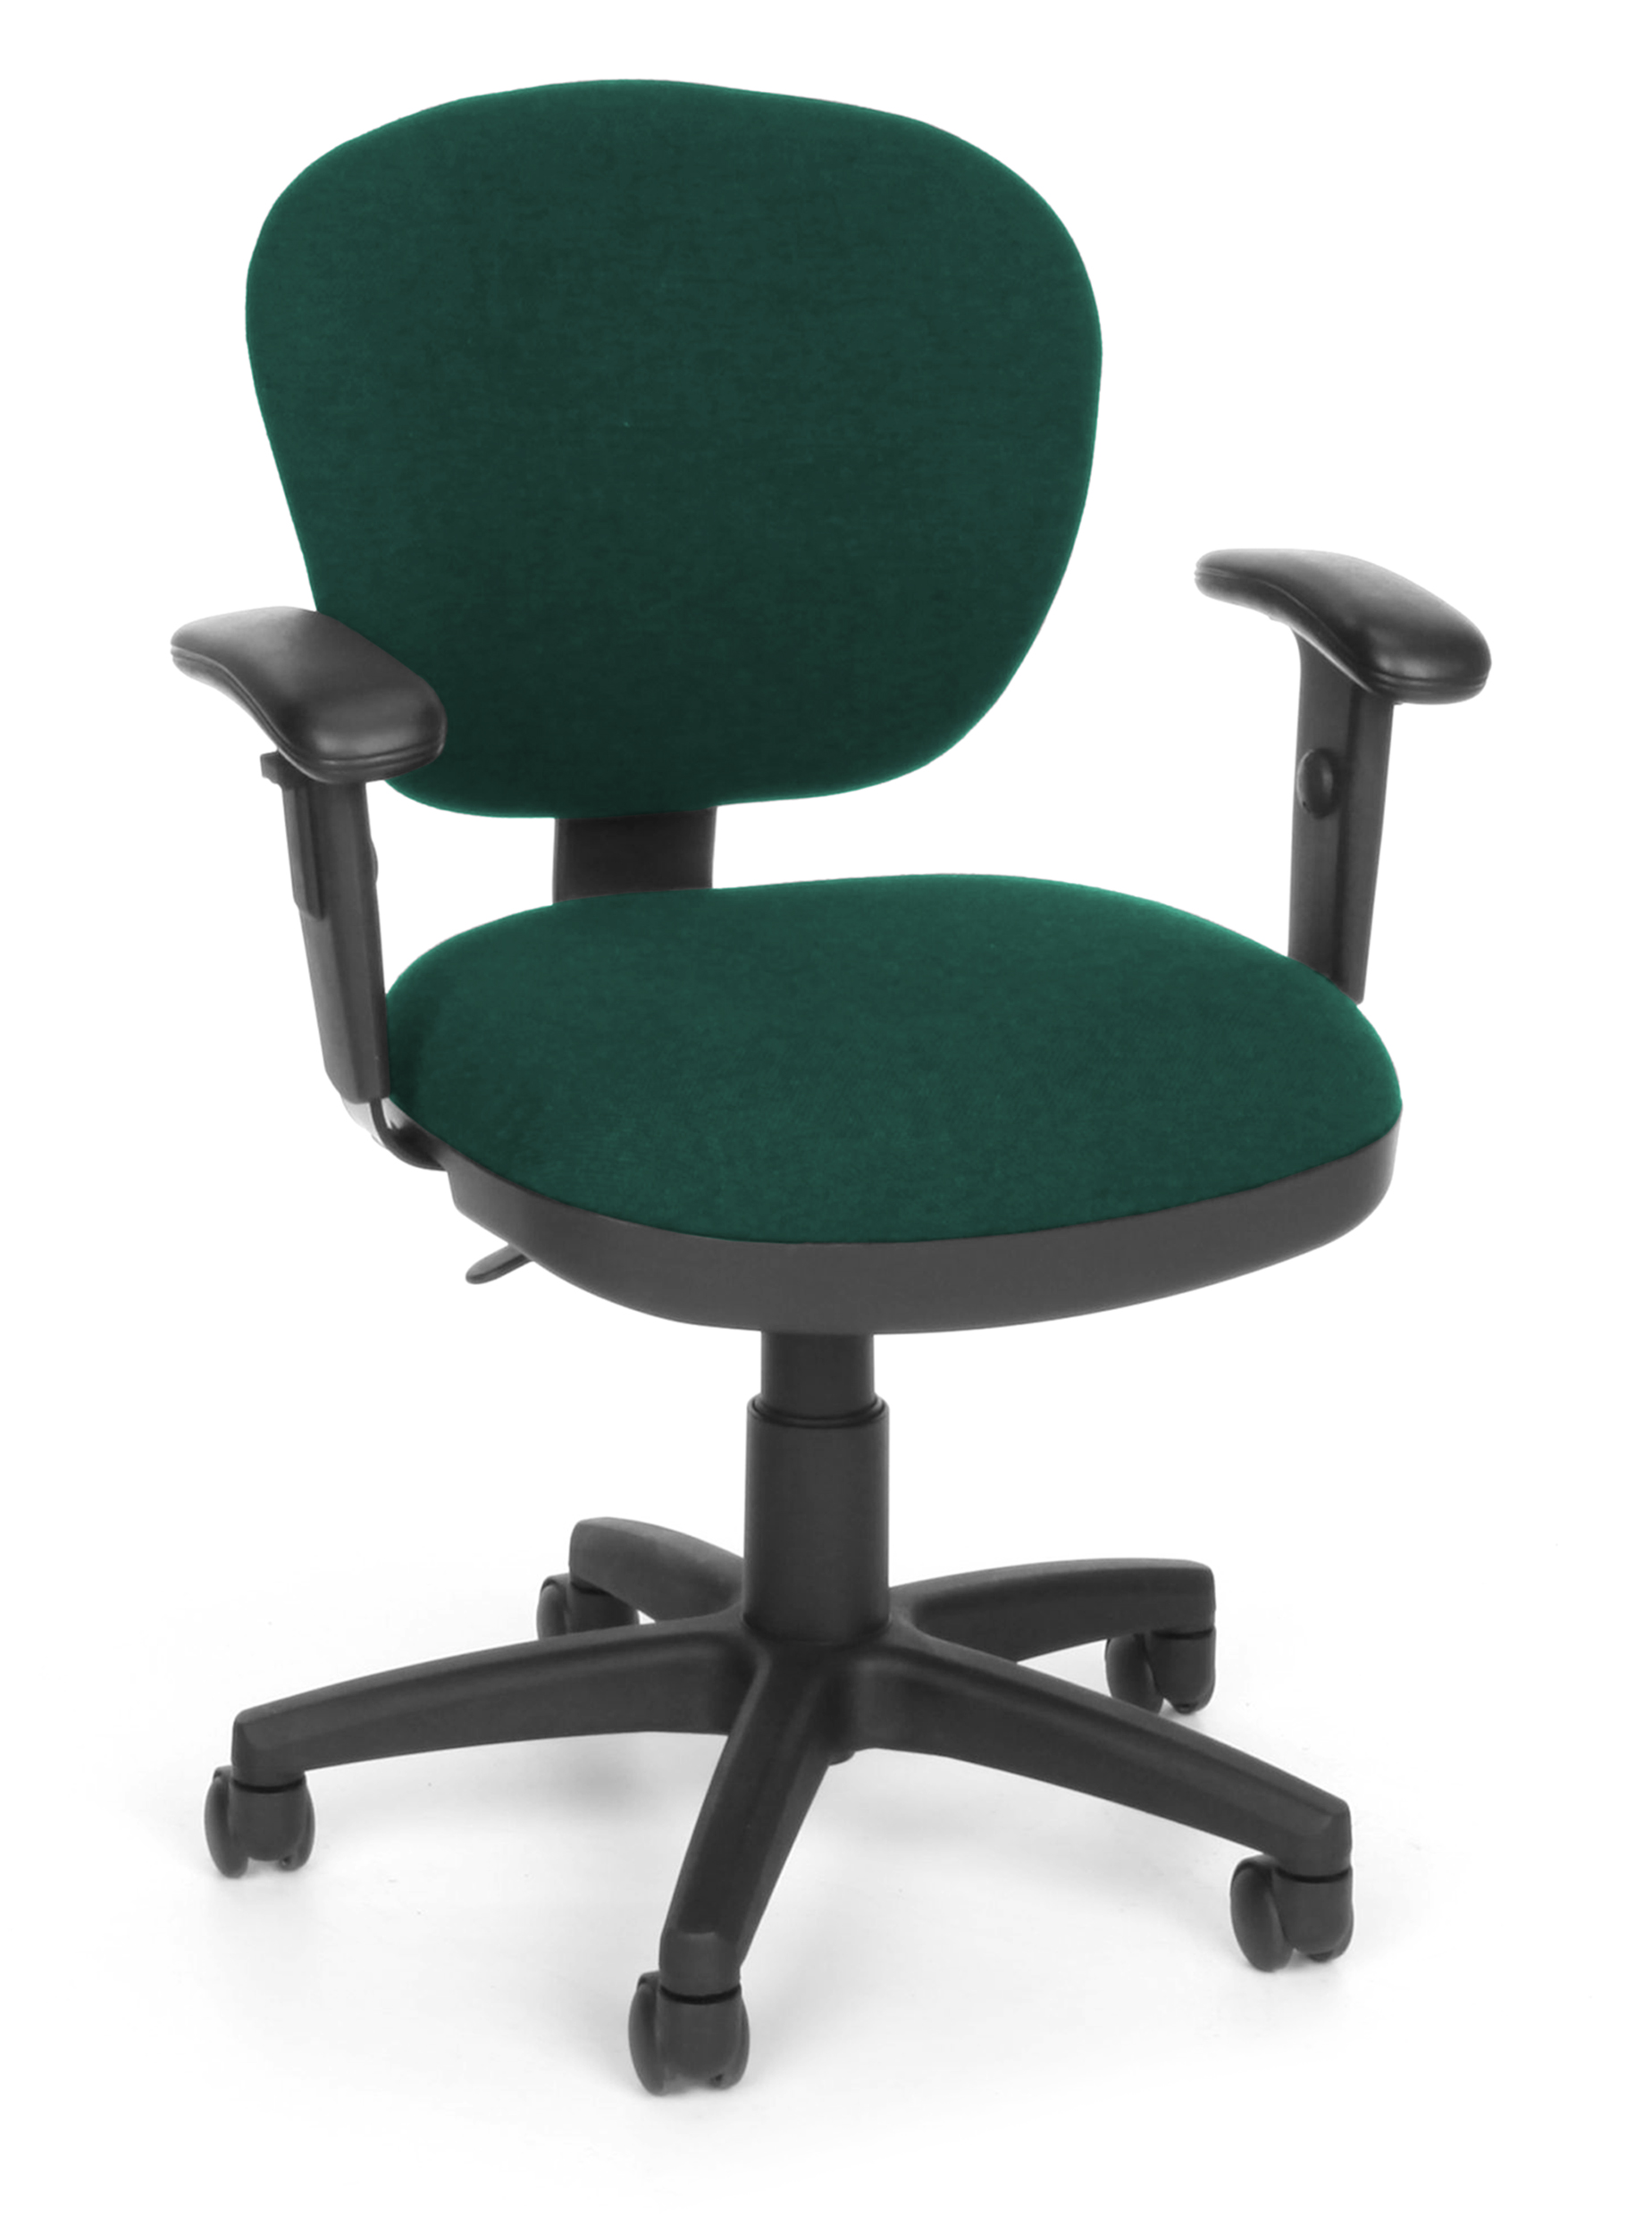 upholstered computer chair poker tables and chairs 150 aa 120 office furniture light use teal fabric 250 lbs capacity 360 degree swivel task with arms walmart com